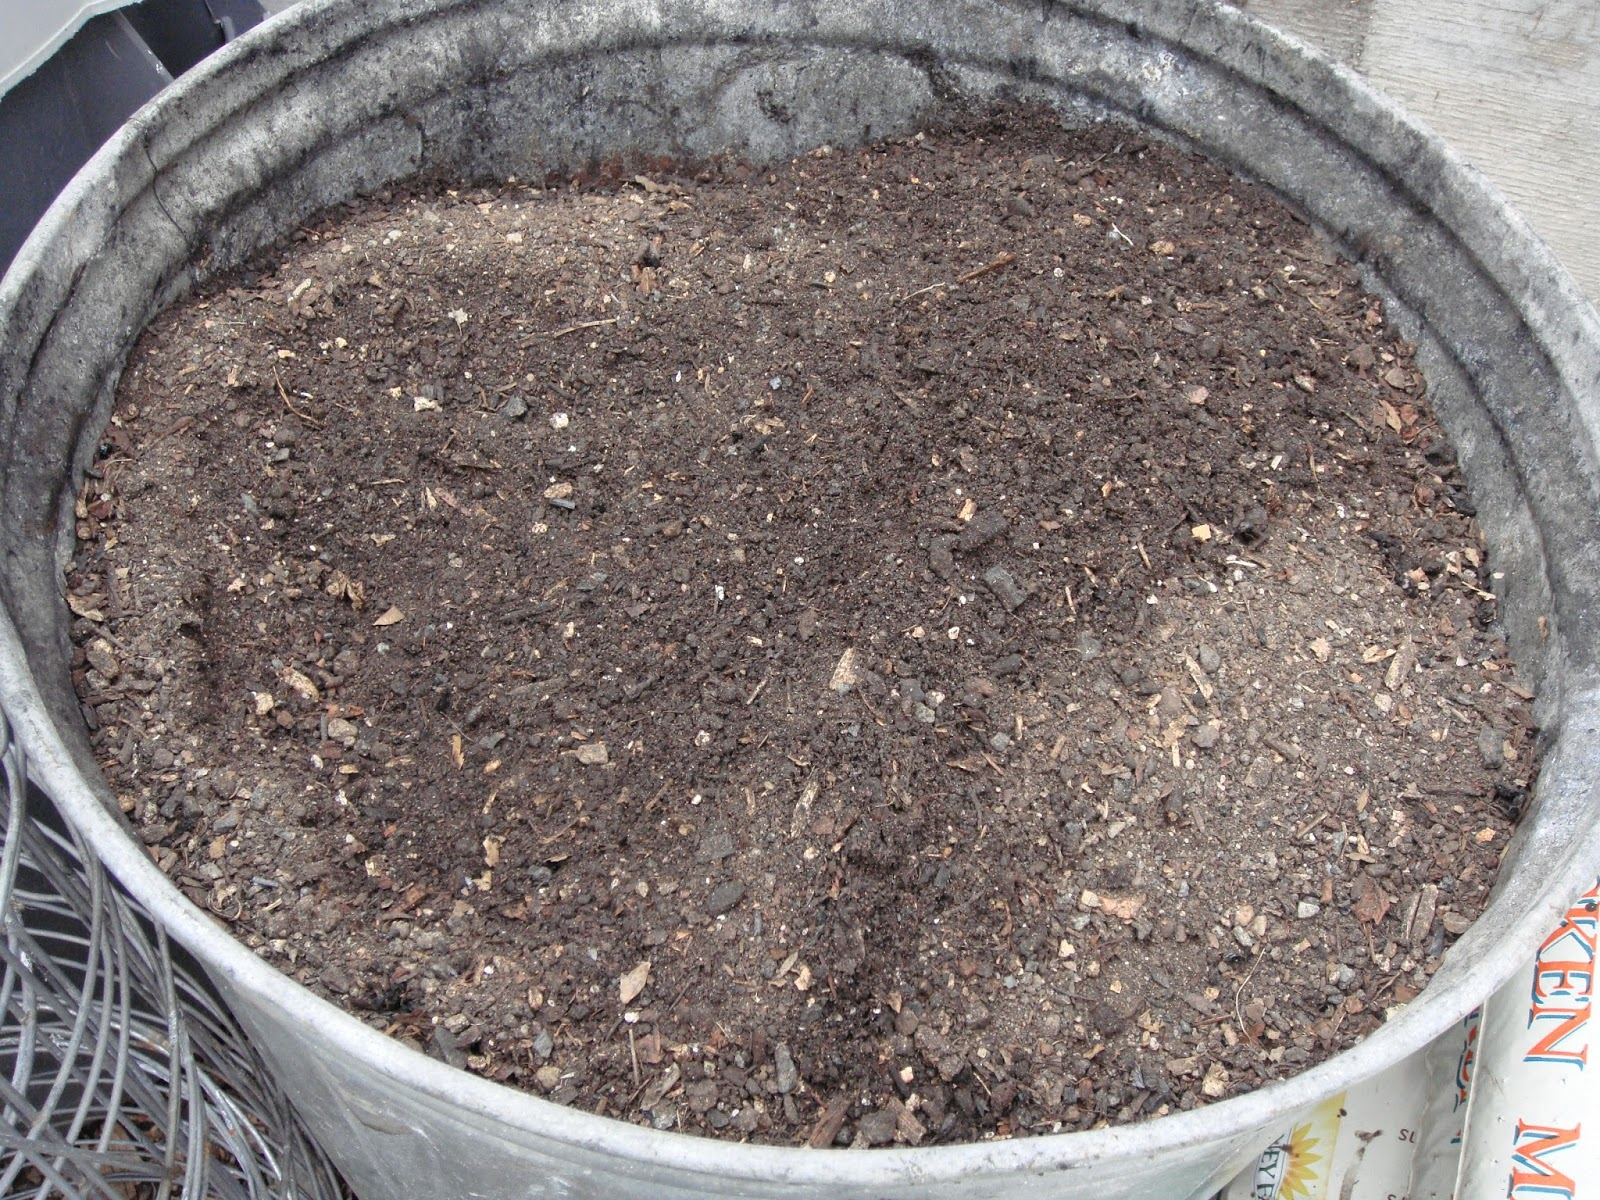 Finished and Screened Compost From Bottom Of Last Pile, Black Gold!  In This Shot I've Taken the Oldest and Most Decomposed Compost and Screened it off Through my Compost Mill, Then Put it in Galvanized Storage Bins (Trash Cans) for Later Use in the Garden Beds or in Making Custom Mixed Potting Soil.